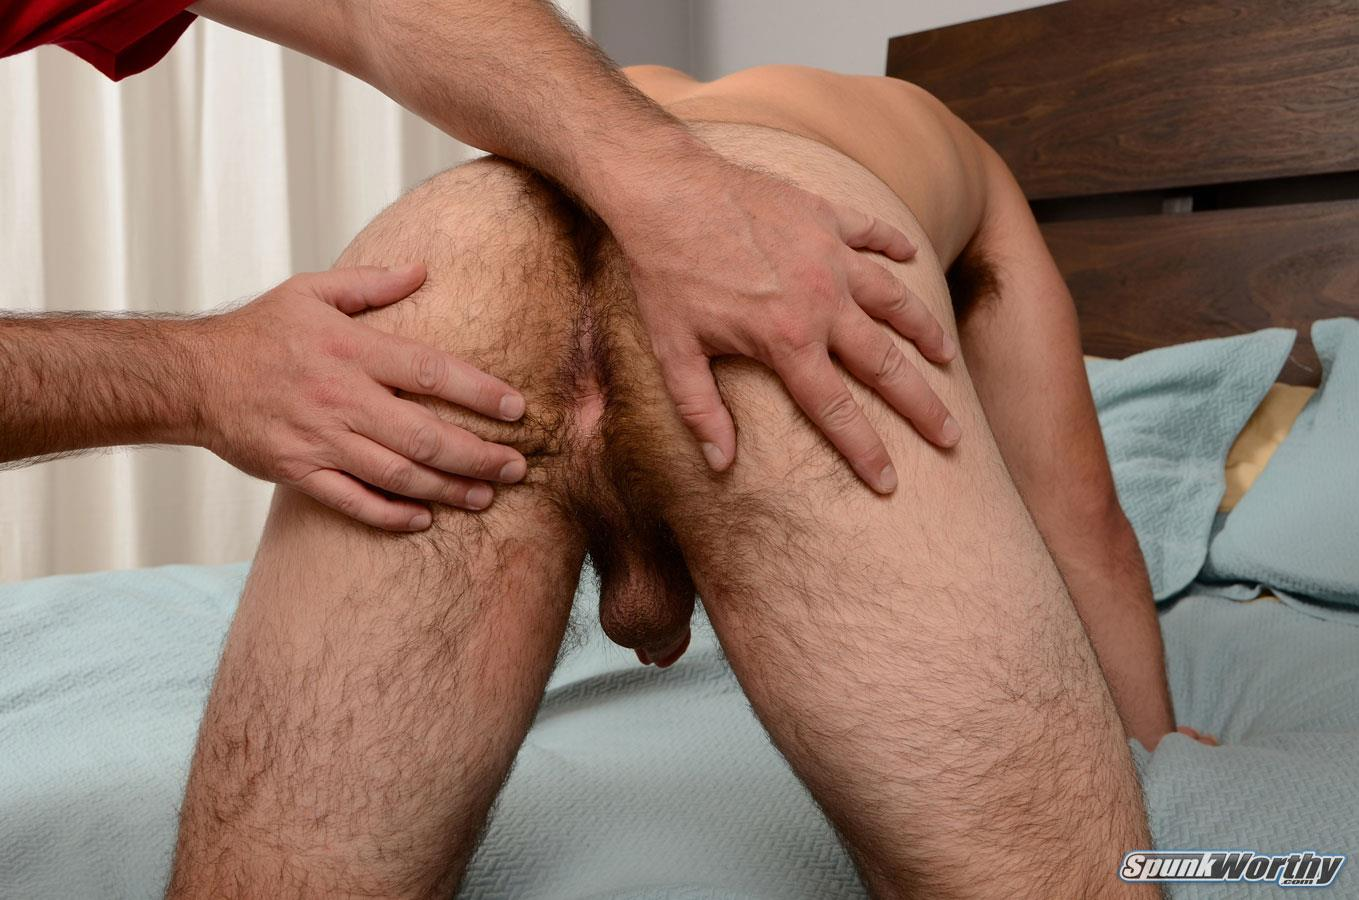 SpunkWorthy Nevin Straight Marine With A Hairy Ass Getting A Gay Blowjob Amateur Gay Porn 08 Straight Marine Gets Jerked and Sucked By Another Guy